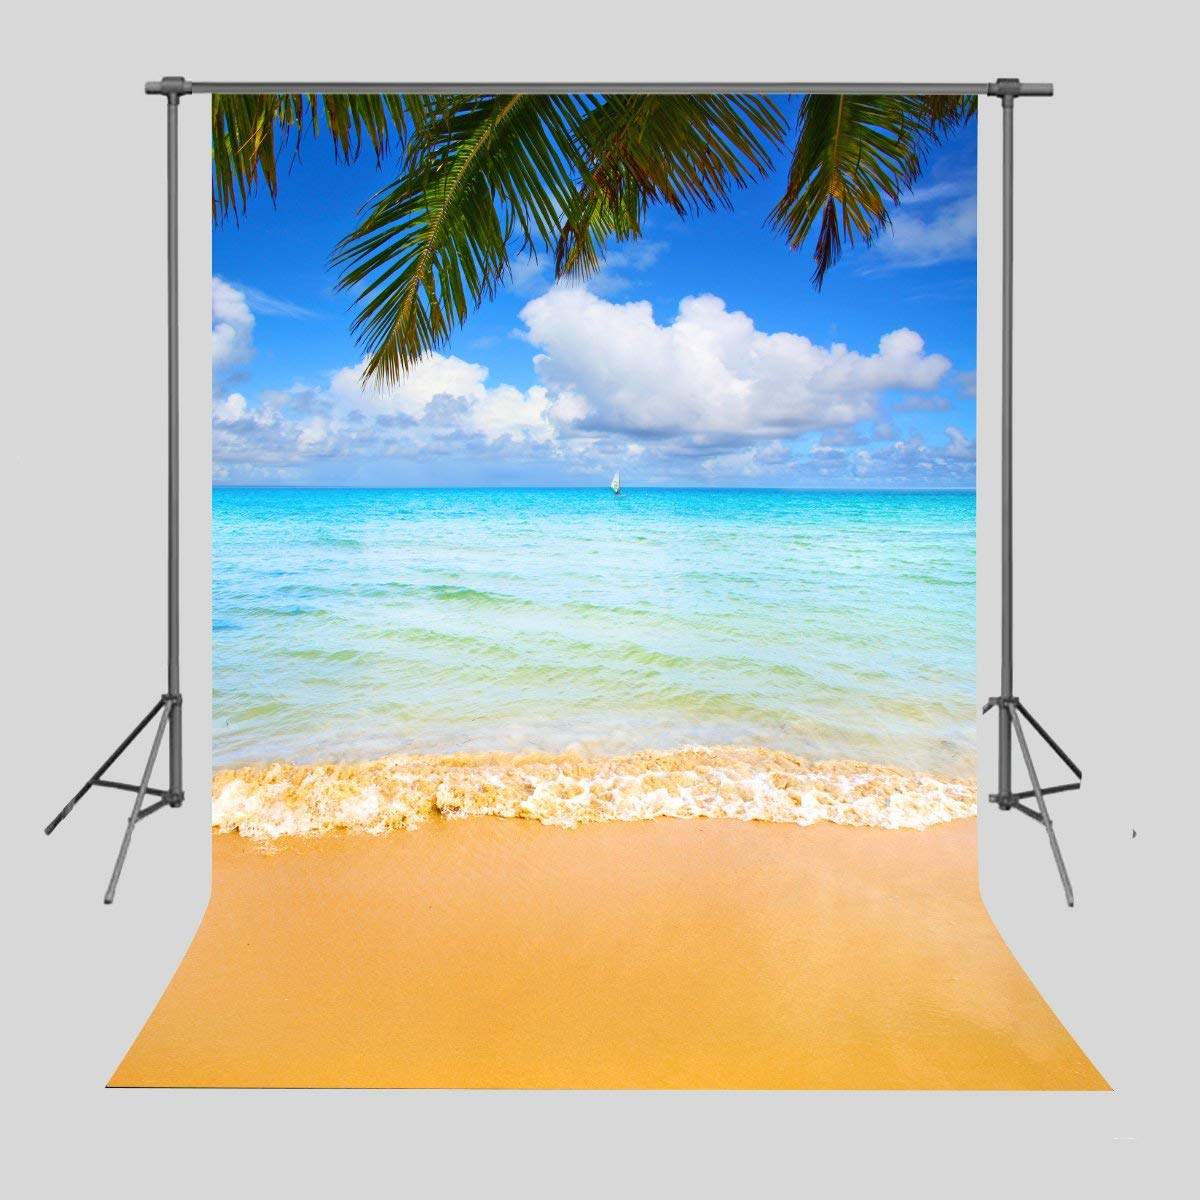 FUERMOR Background 5x7ft bluee Sky White Clouds Sea Beach Photography Backdrop Vacation Photo Props Room Mural HUIFU052